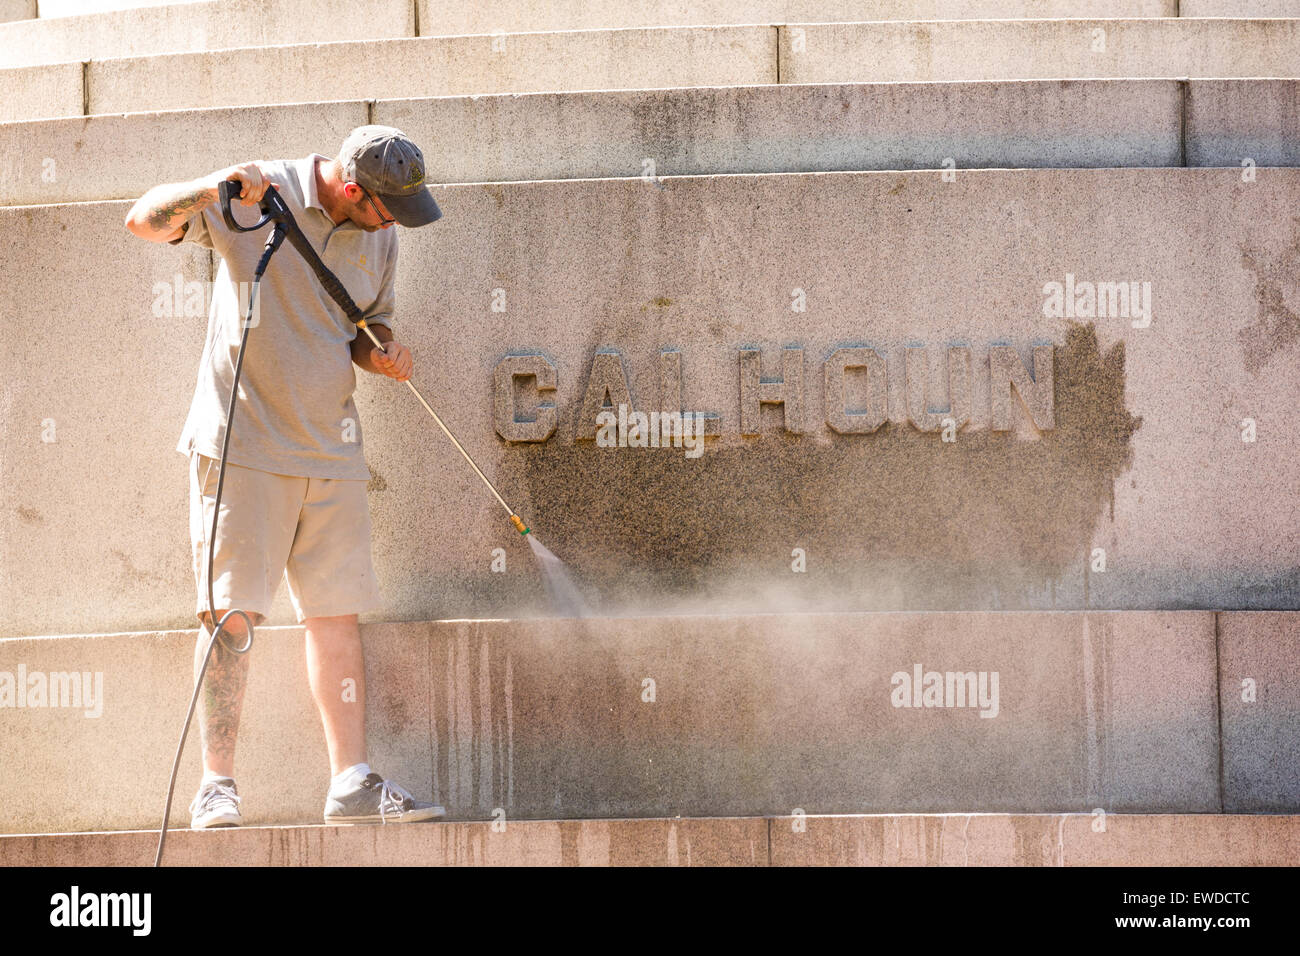 Charleston, South Carolina, USA. 23rd June, 2015. A worker pressure washes graffiti from the John C. Calhoun statue - Stock Image